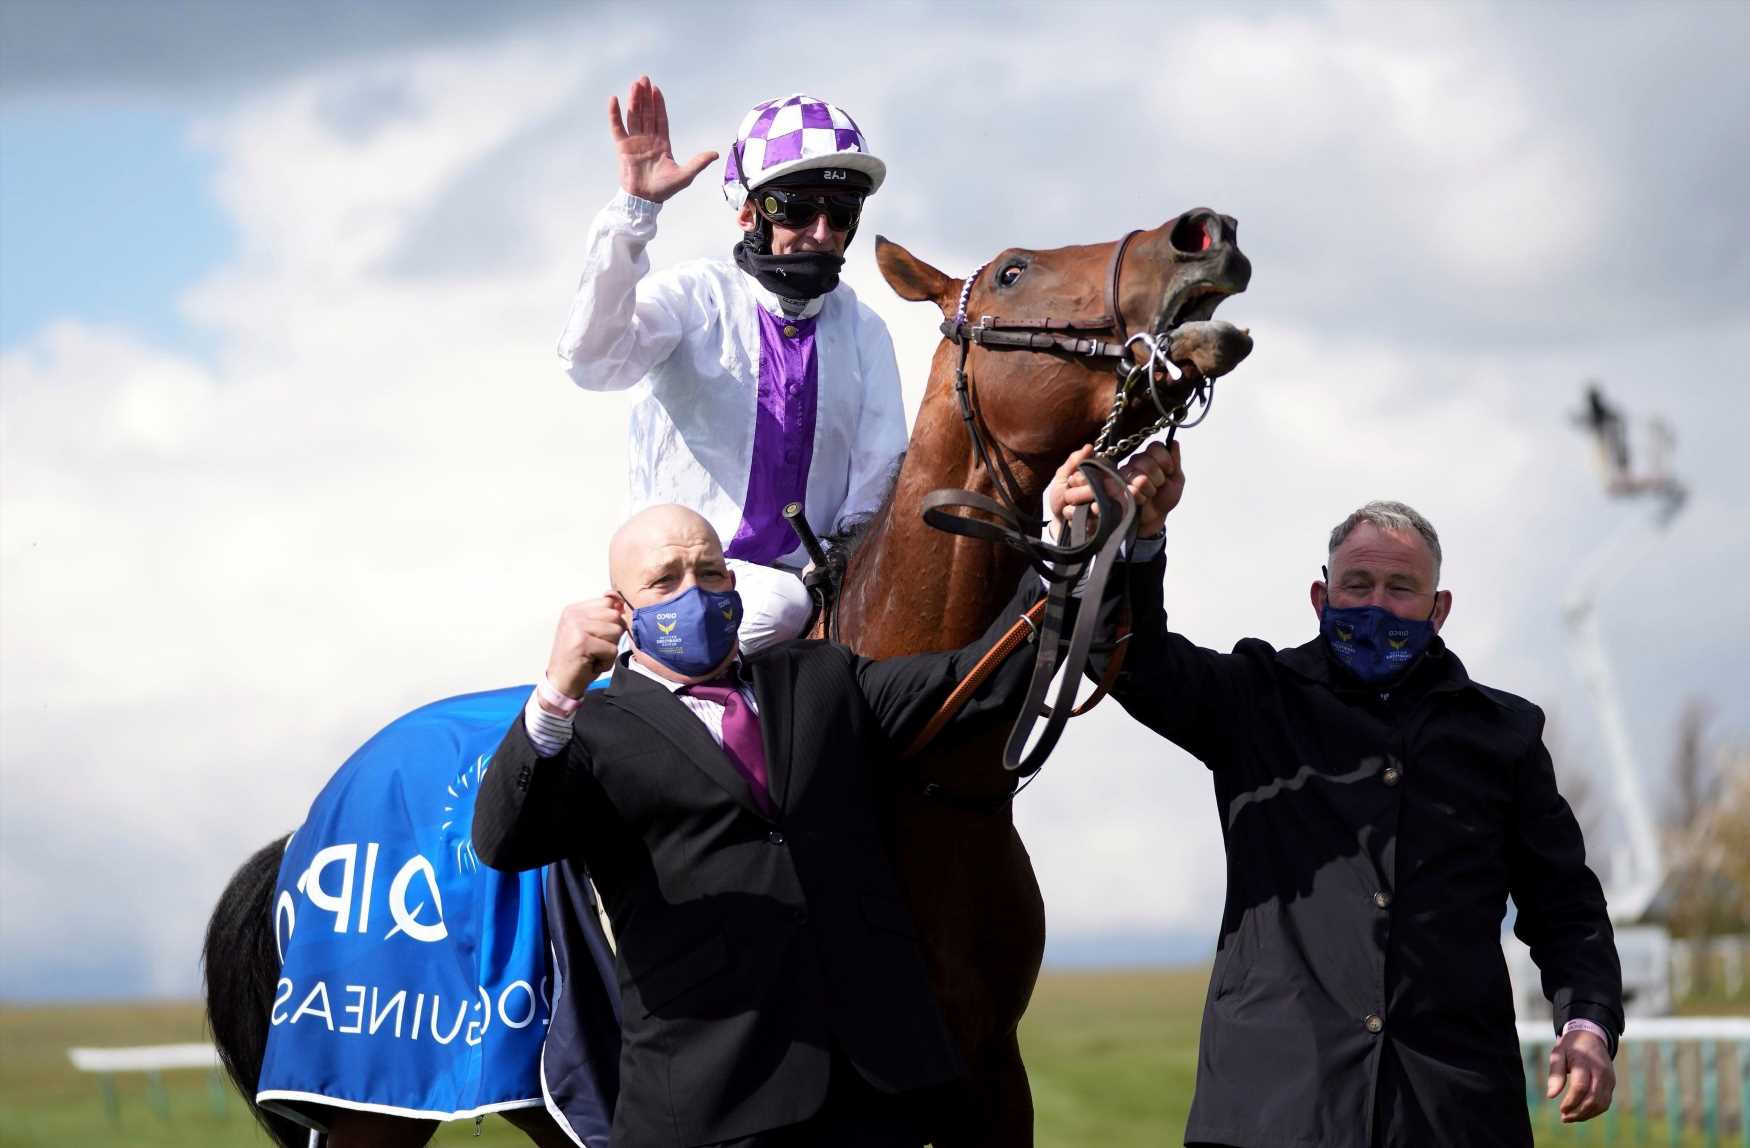 With the 2000 and 1000 Guineas headed back to Ireland who was smiling and who was left in the doldrums after Newmarket